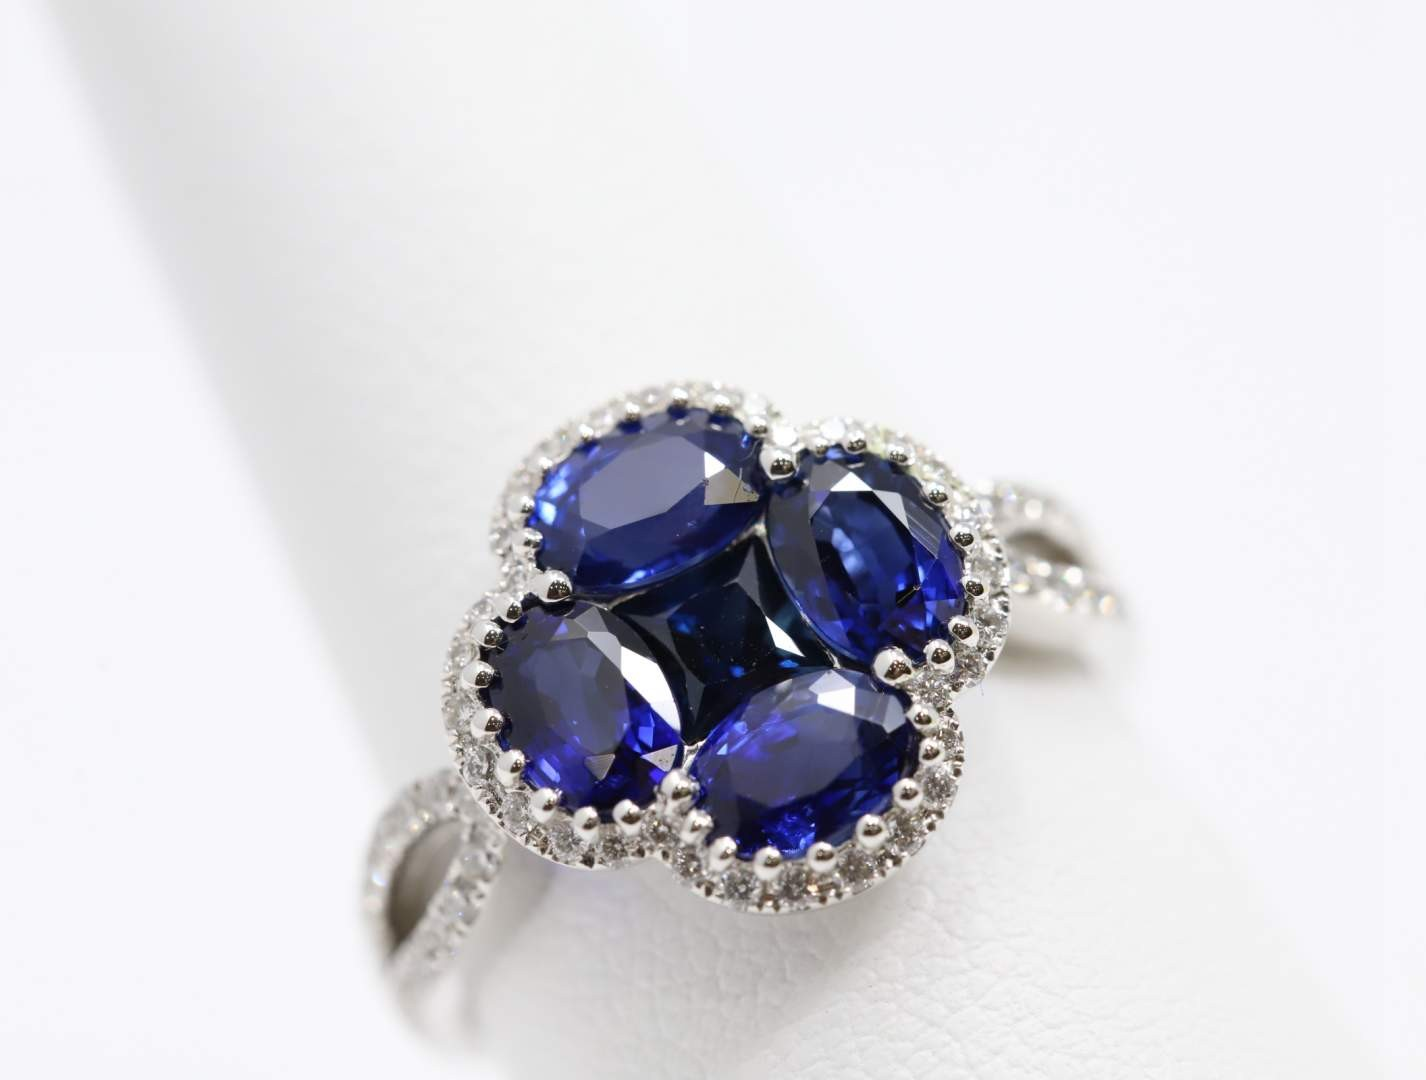 Ladies 14k White Gold Sapphire Ring